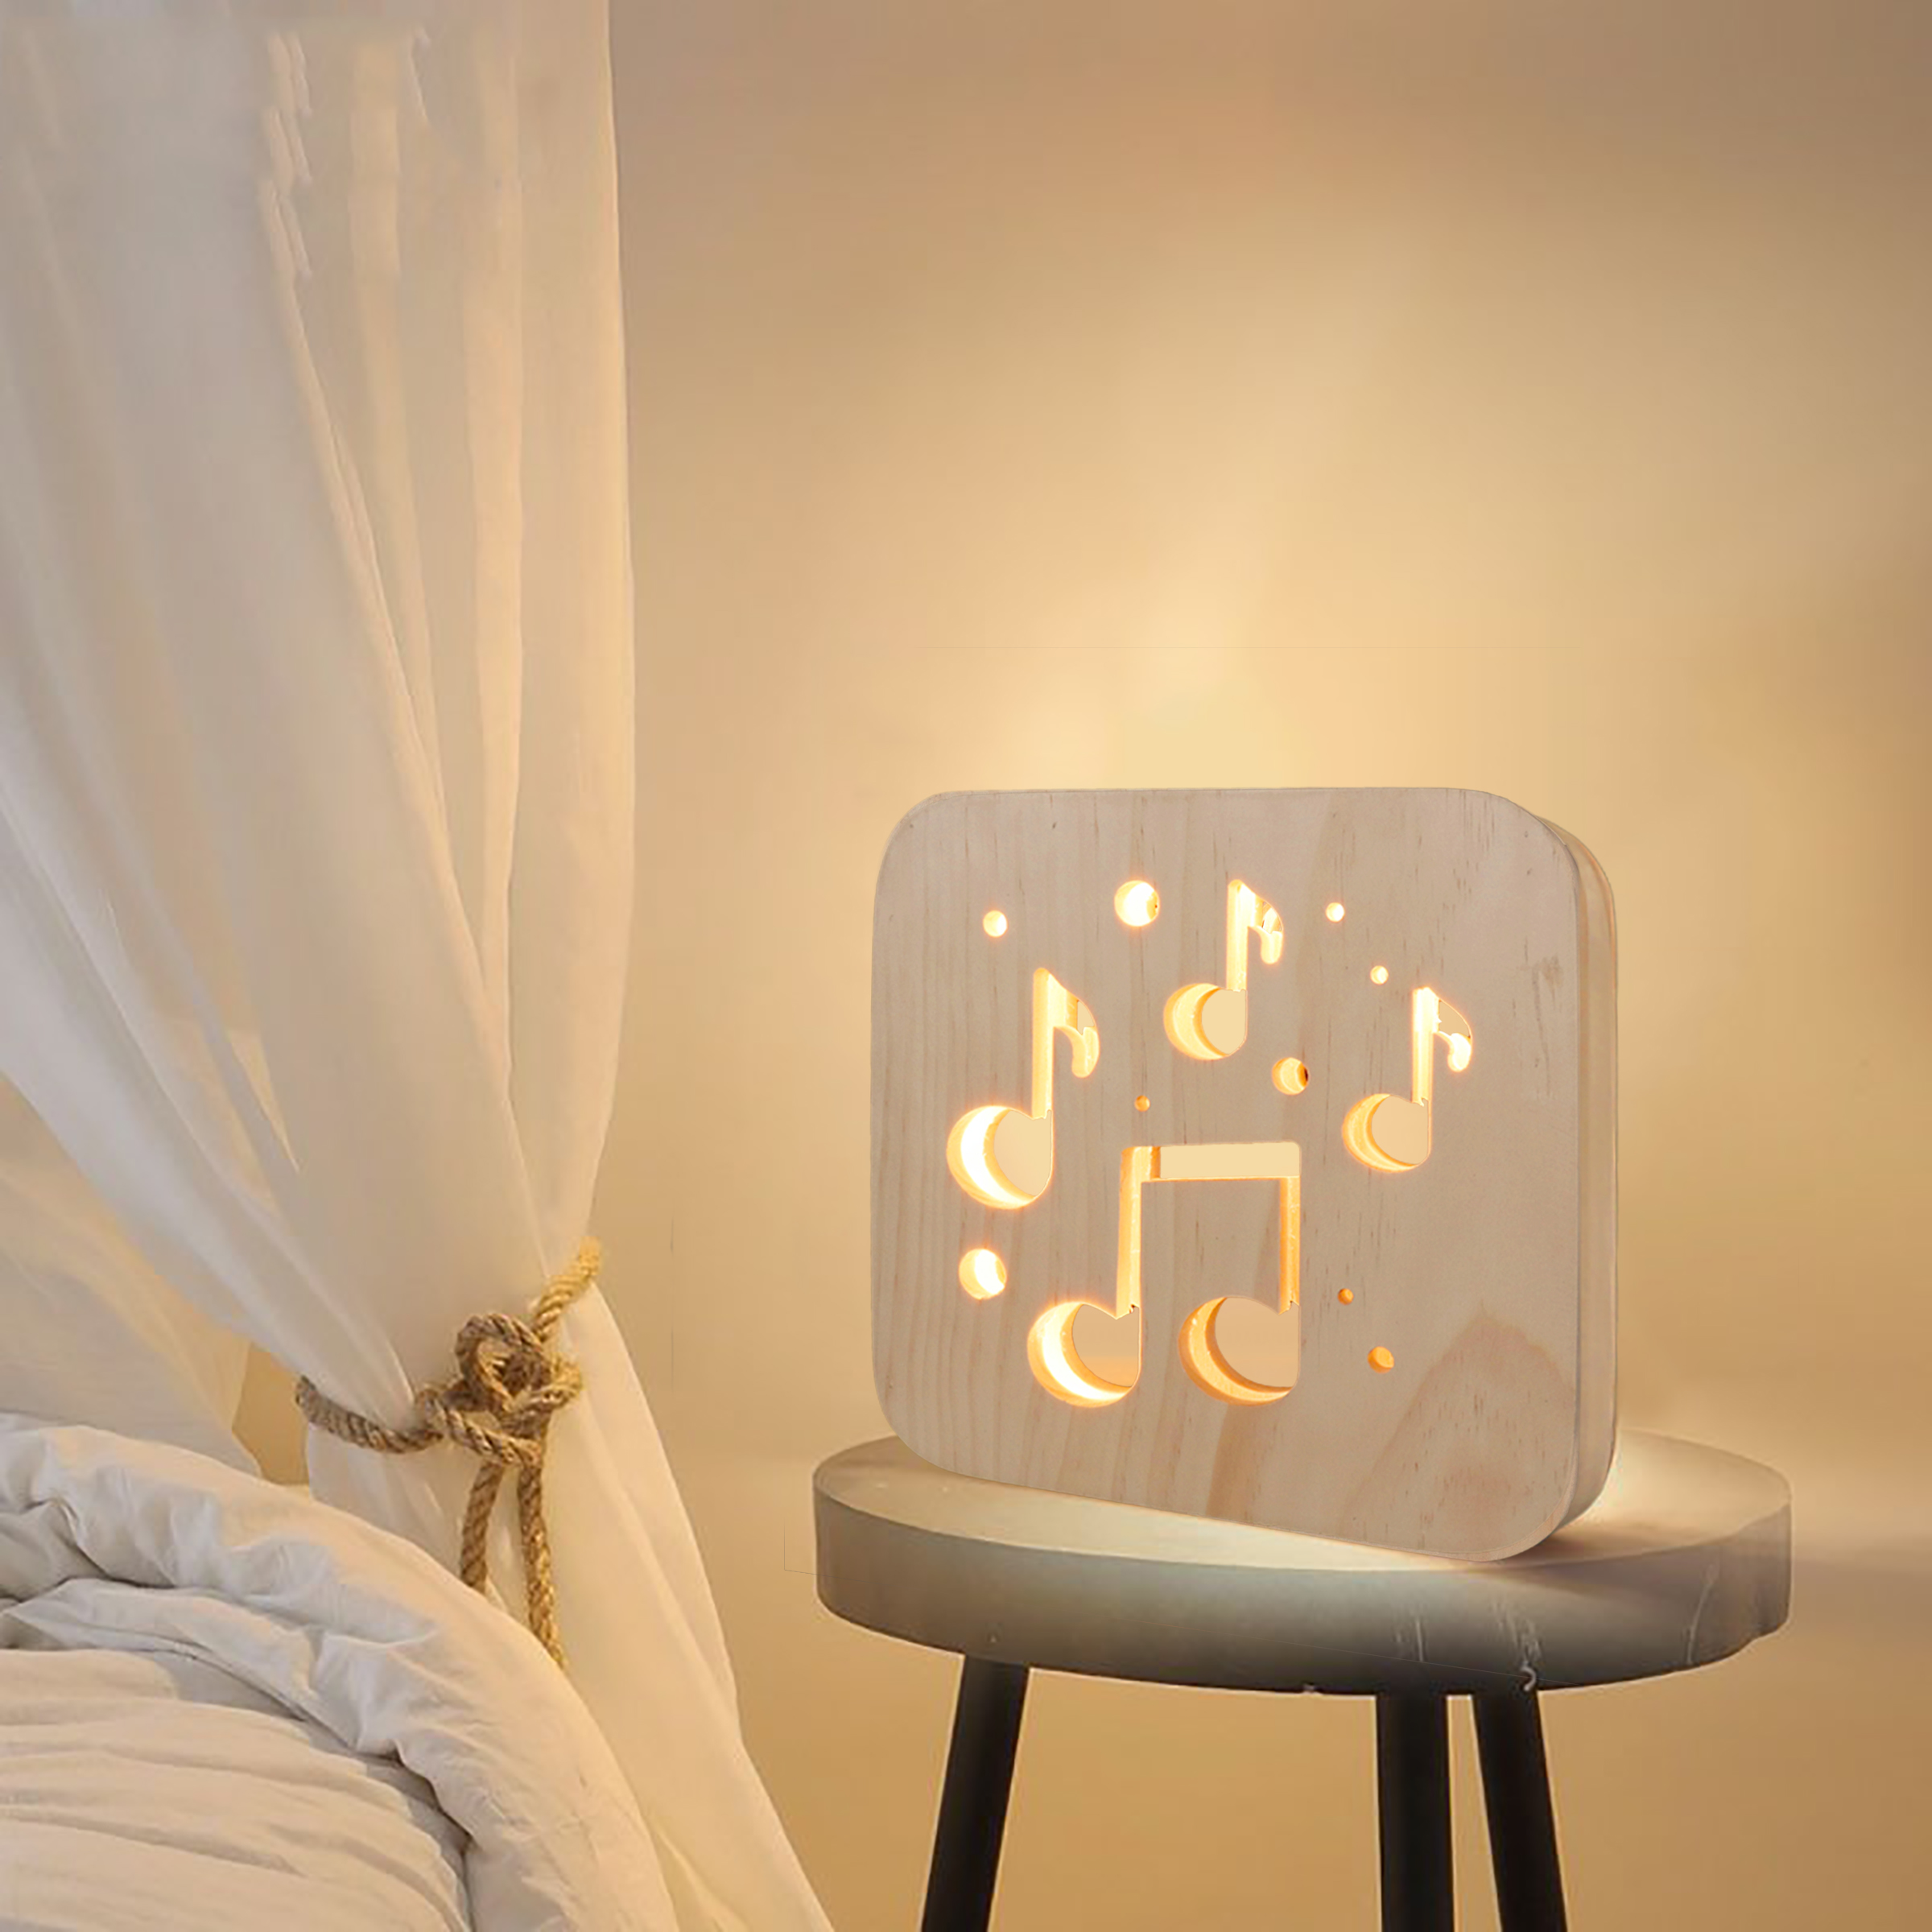 Miumiu Musical Notes Craft Atmosphere Lamp Wooden Carved Hollow Night Light USB LED Baby Children Room Desktop Decoration